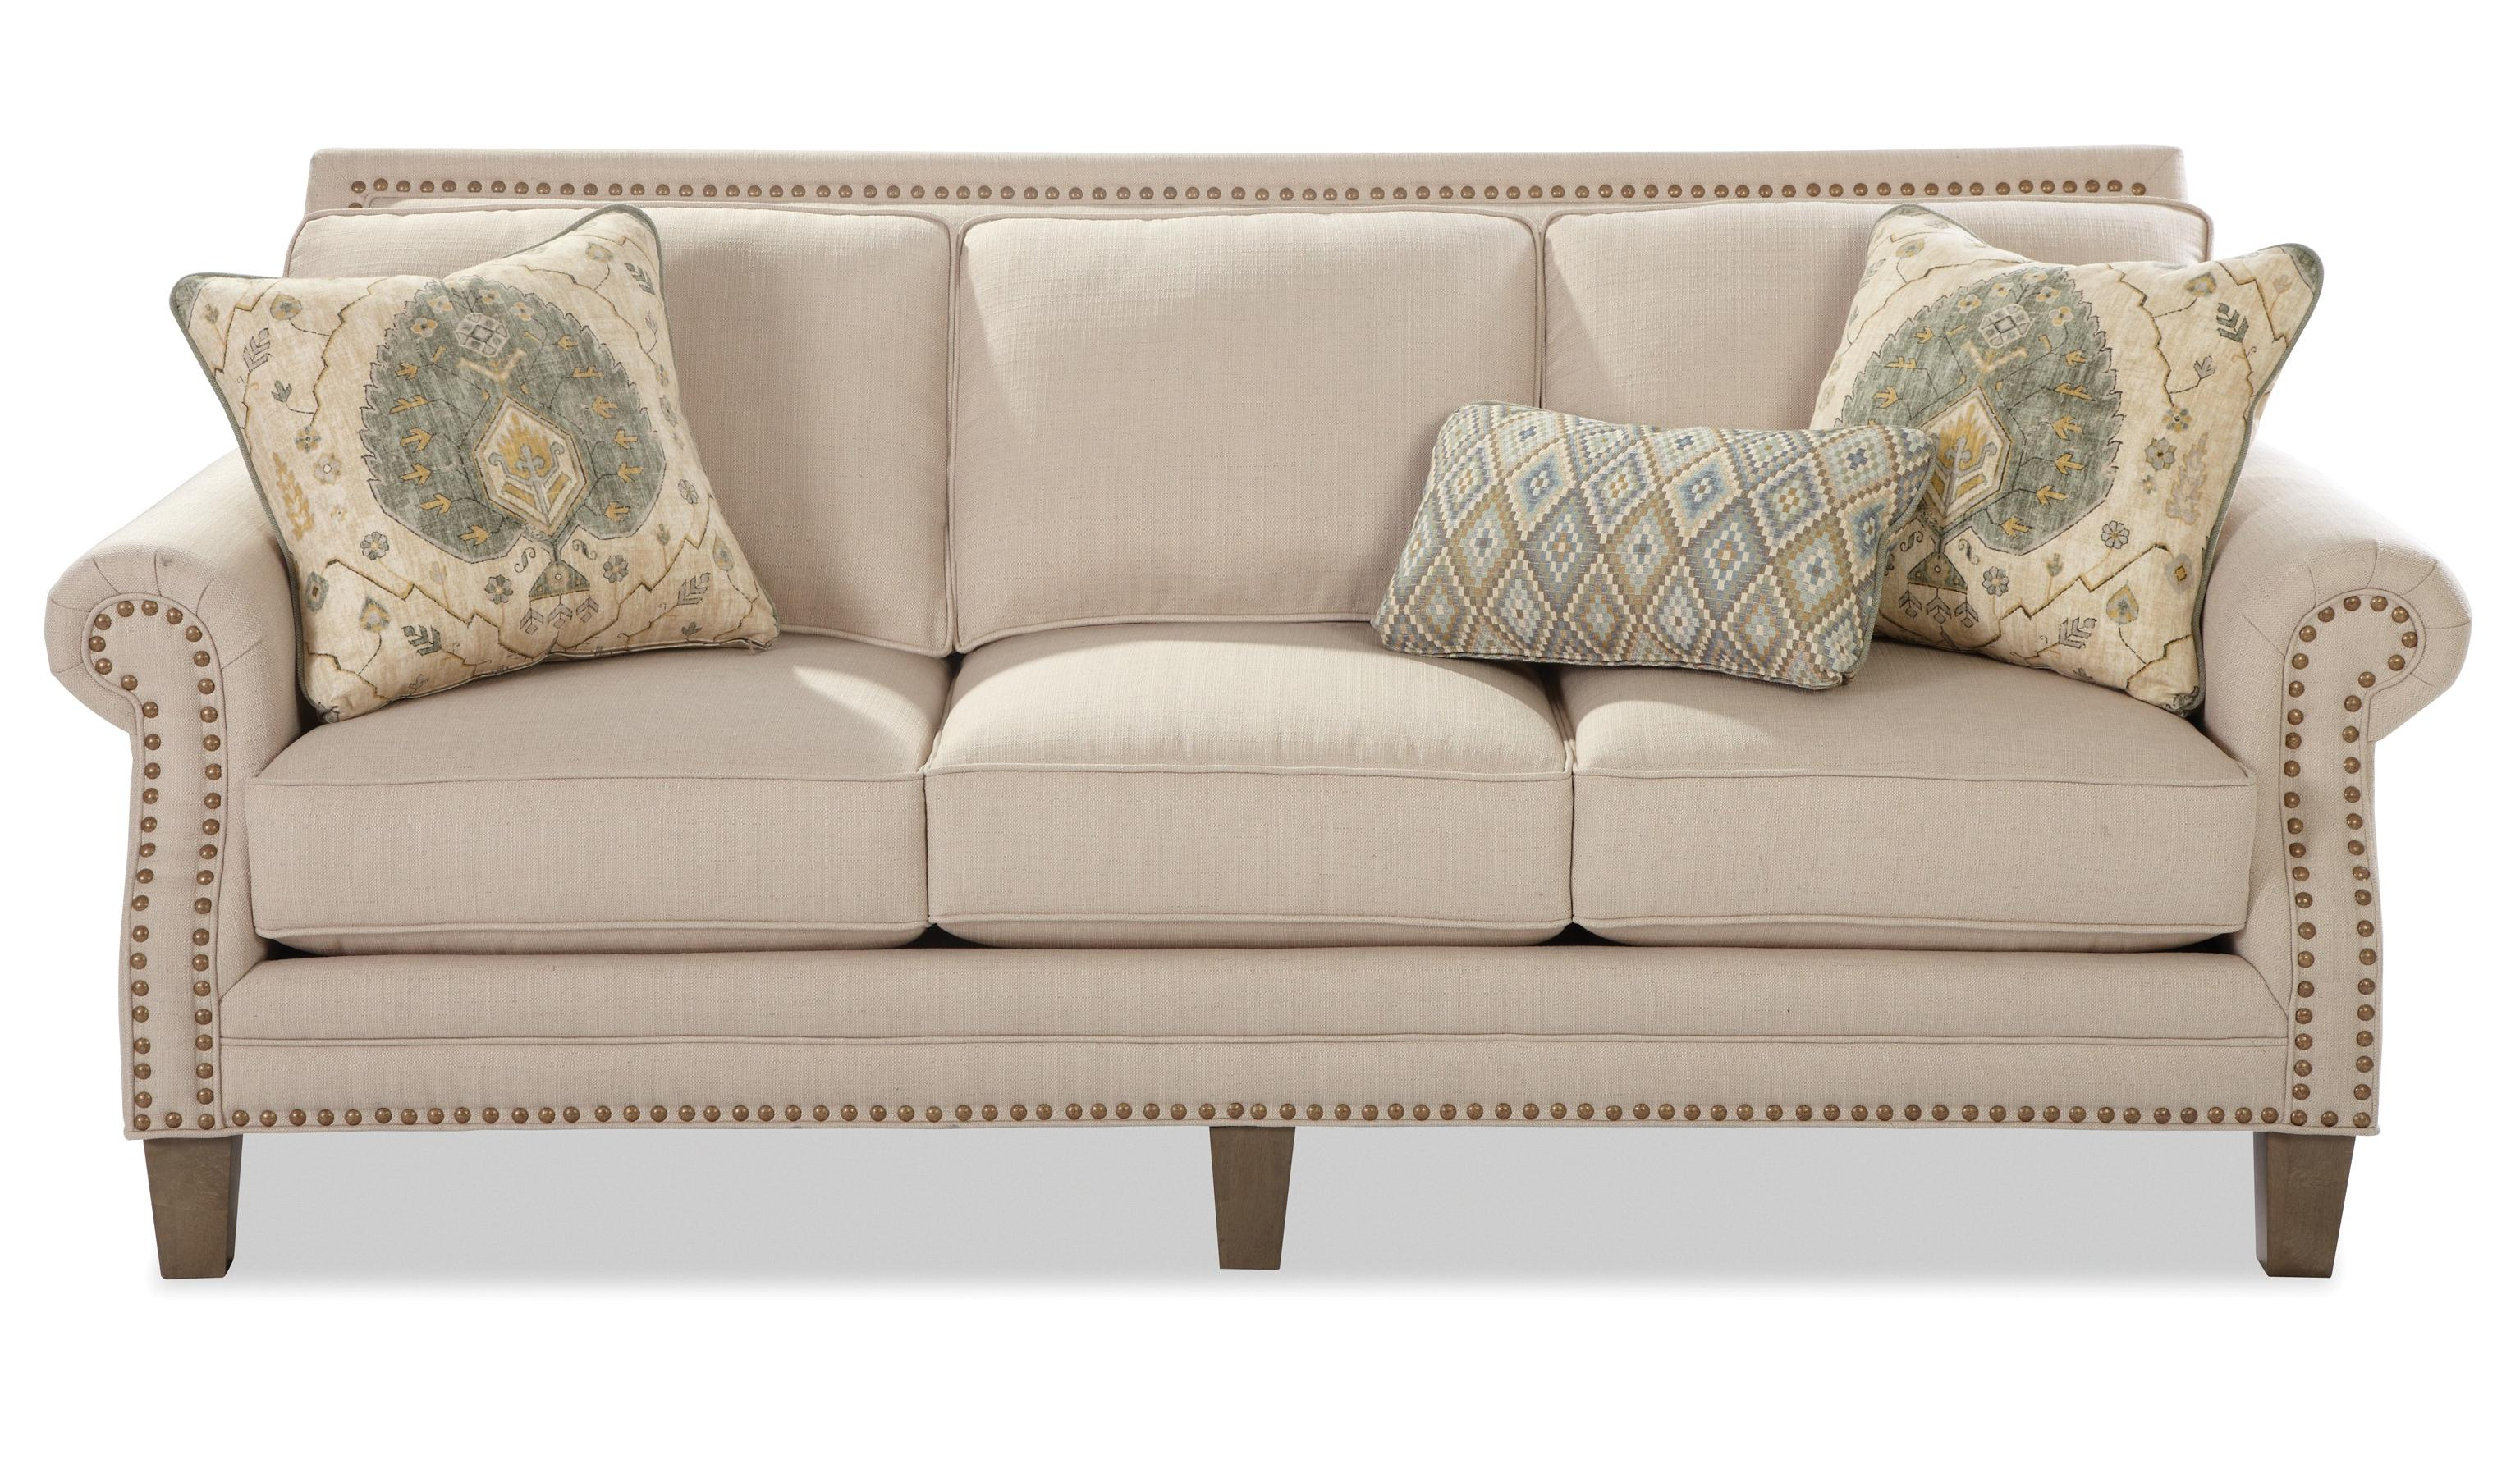 sofa nailhead abbyson living marquee white convertible transitional with brass nailheads by craftmaster